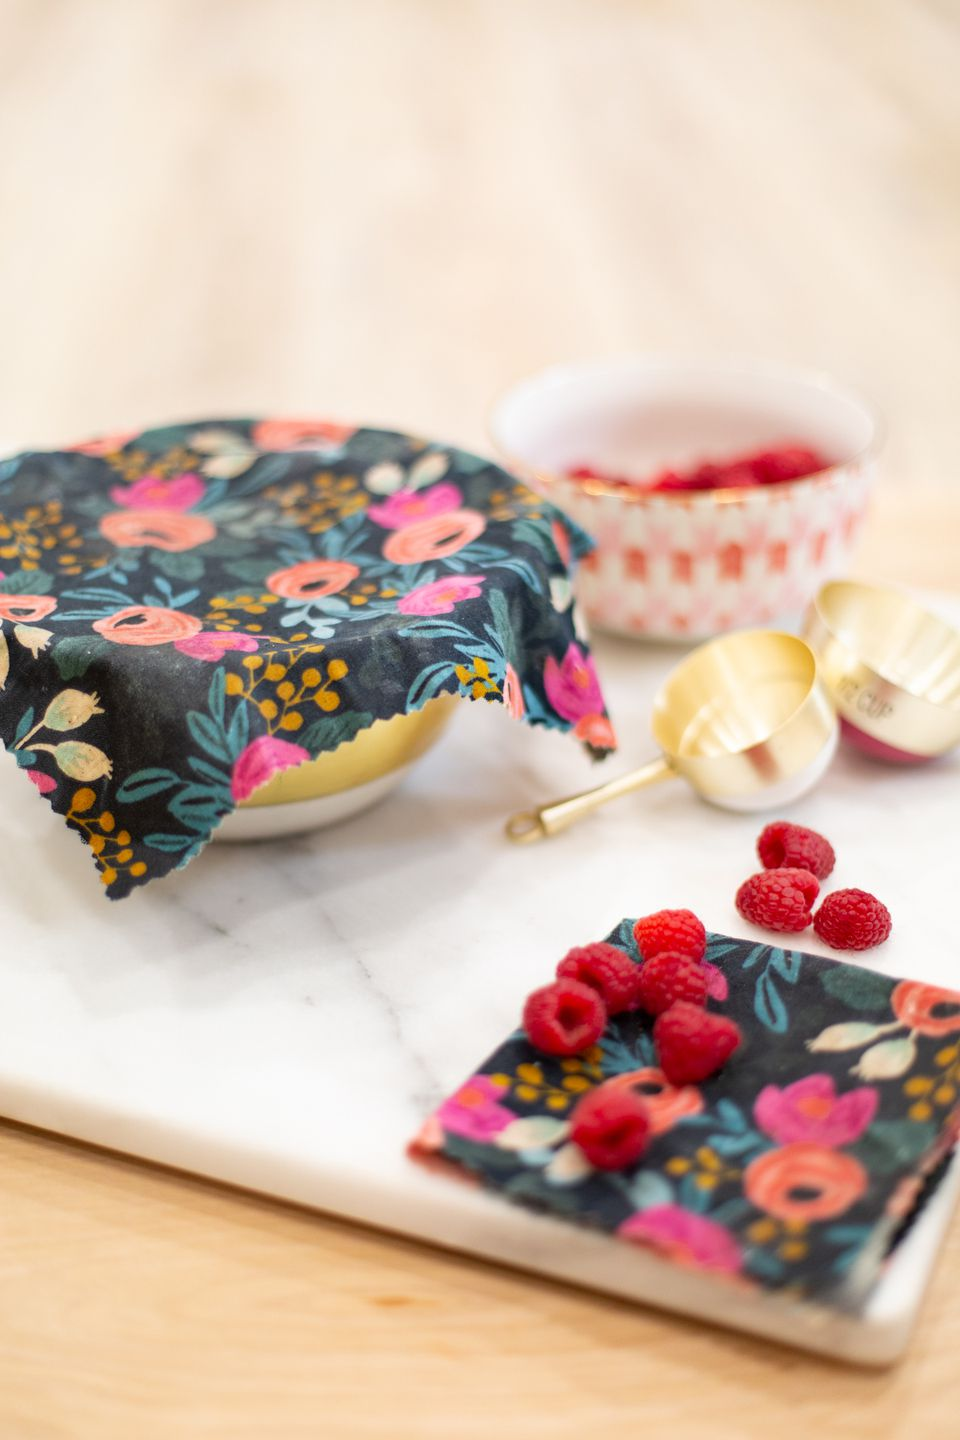 How to make reusable food wraps